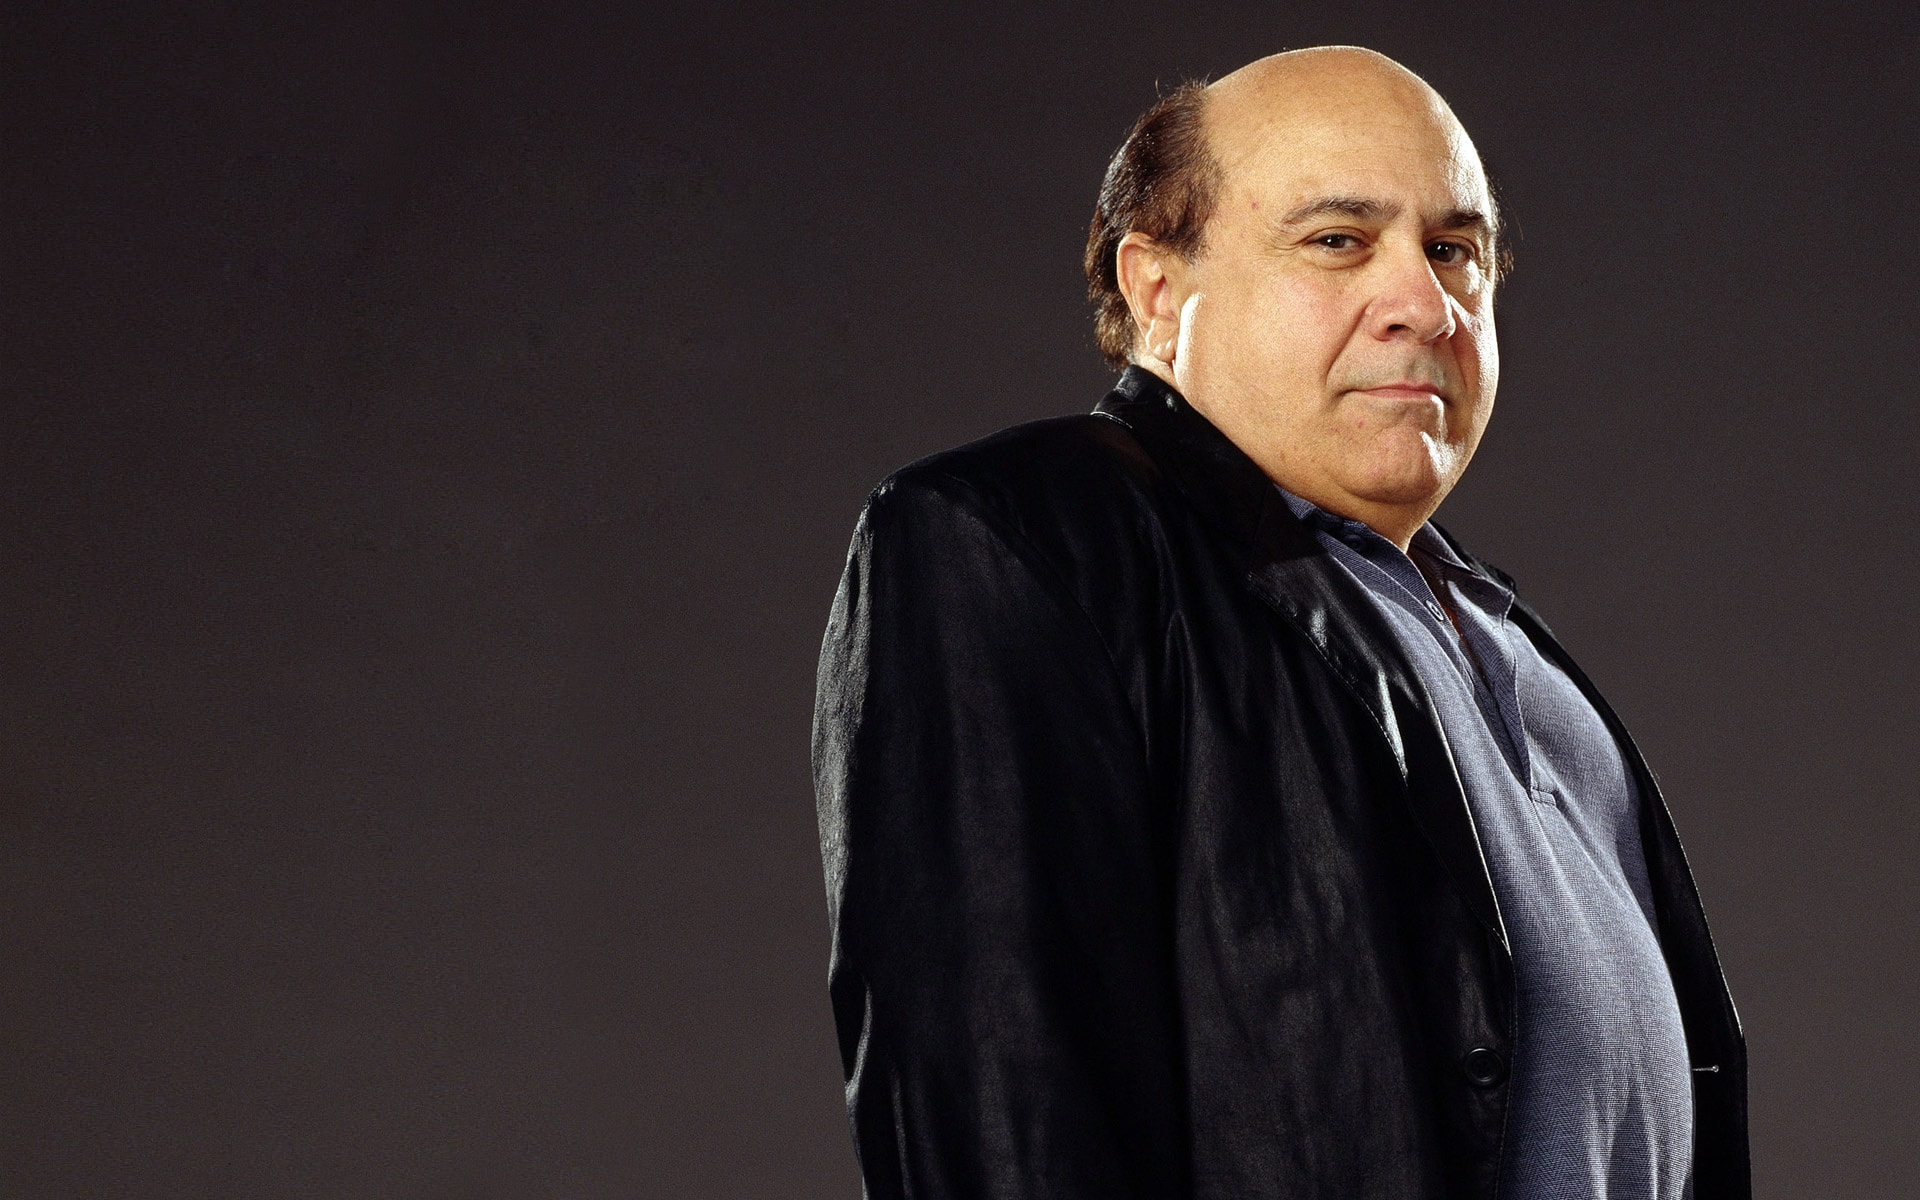 Danny Devito Download